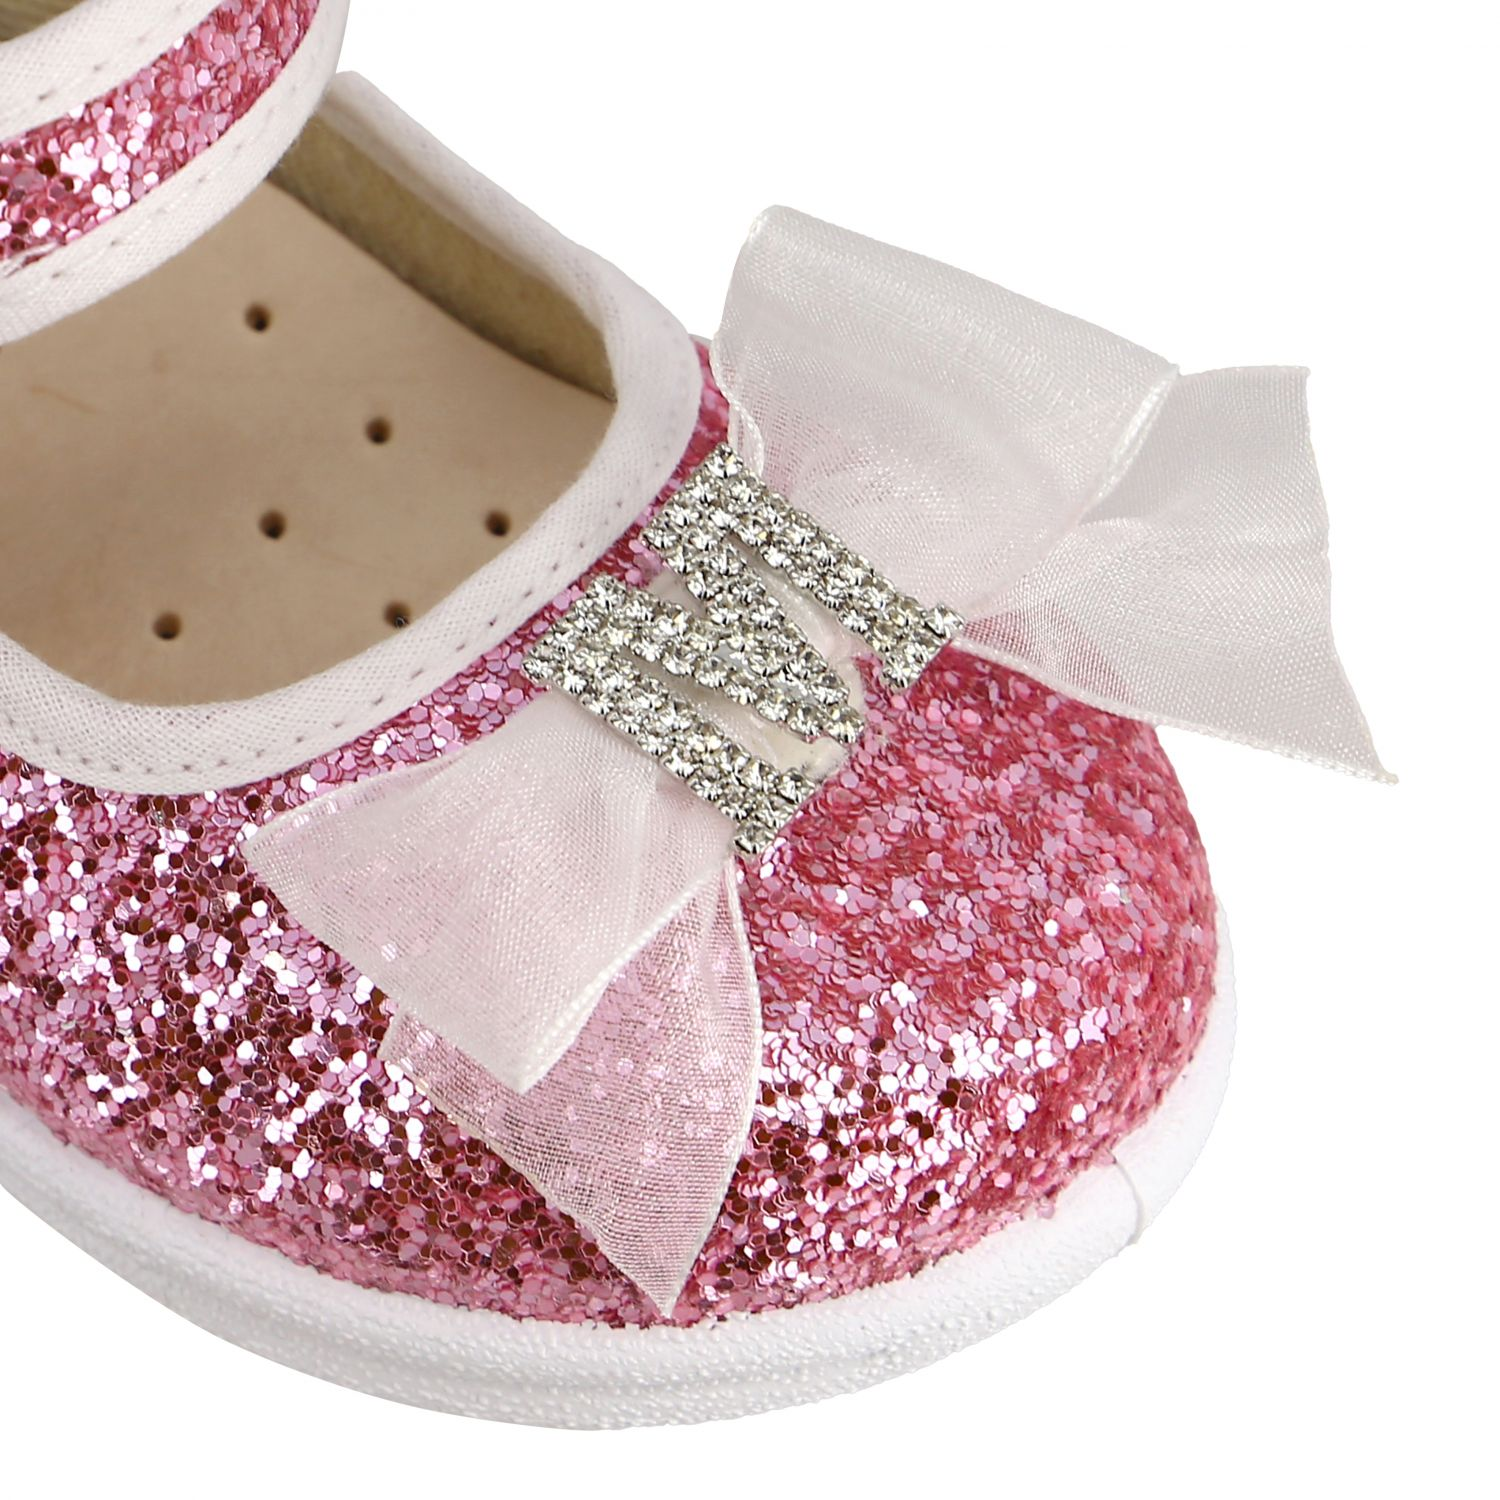 Monnalisa ballet flats in glitter fabric with bow and rhinestones pink 4